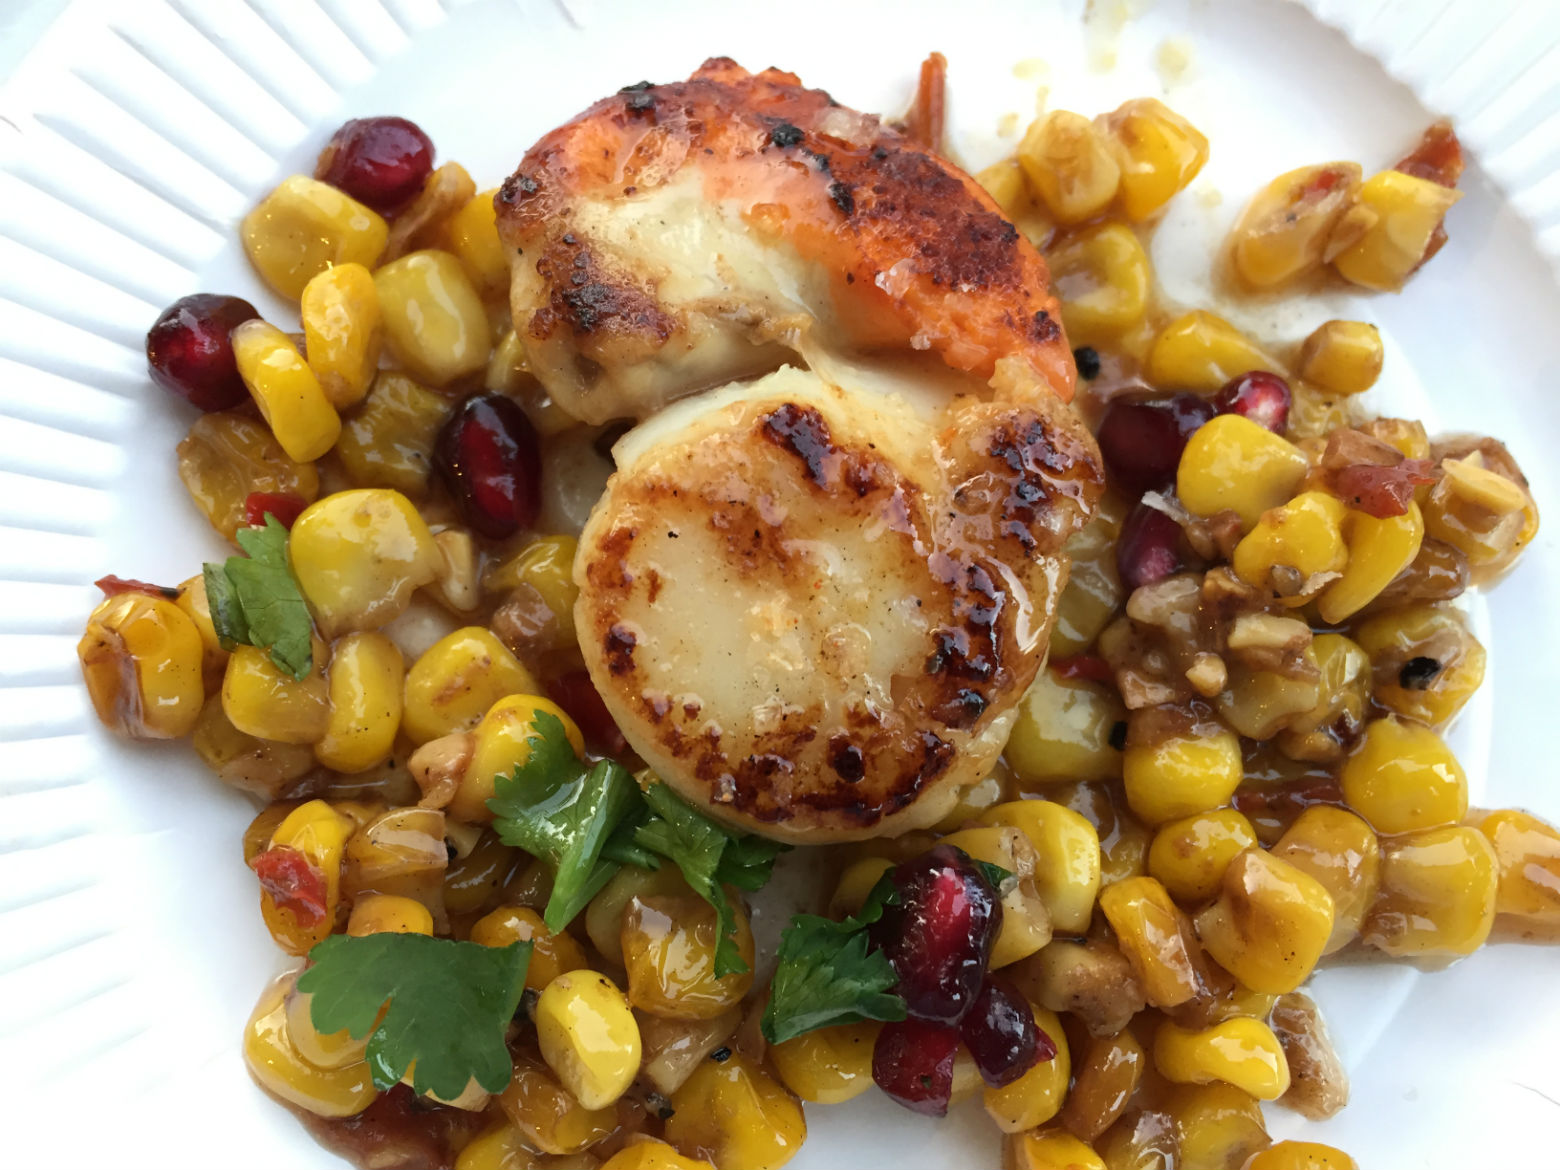 Scallop and sweetcorn from Crabbieshack. Photo: SE